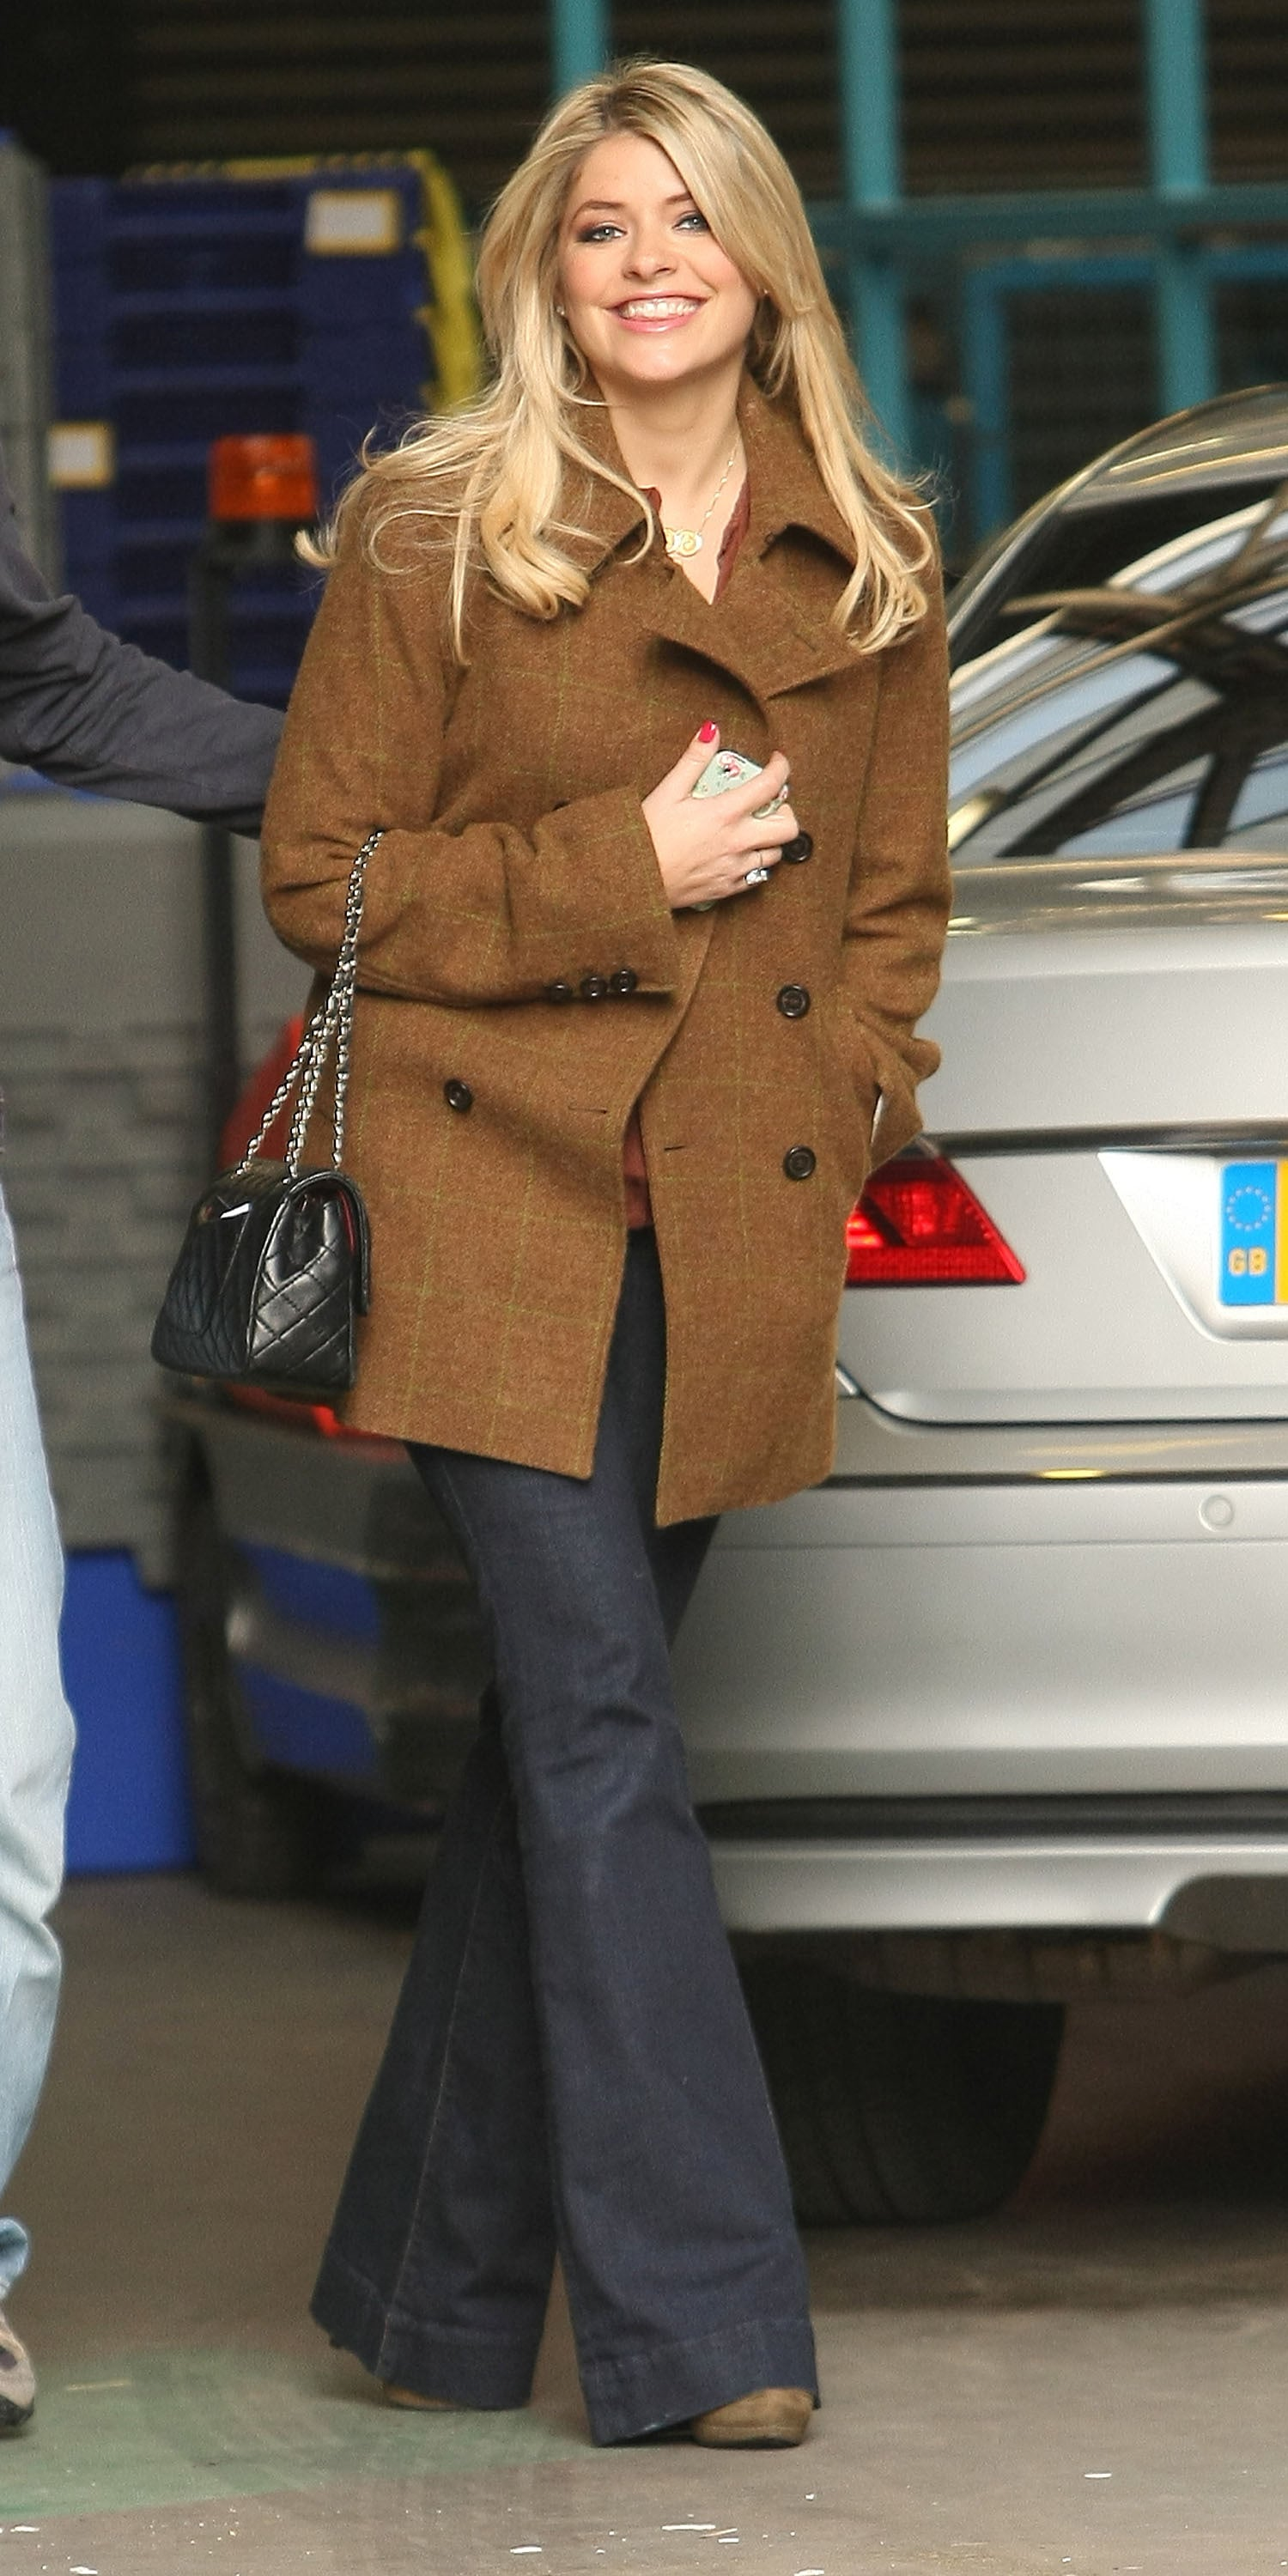 Pictures Of Pregnant Holly Willoughby Outside This Morning